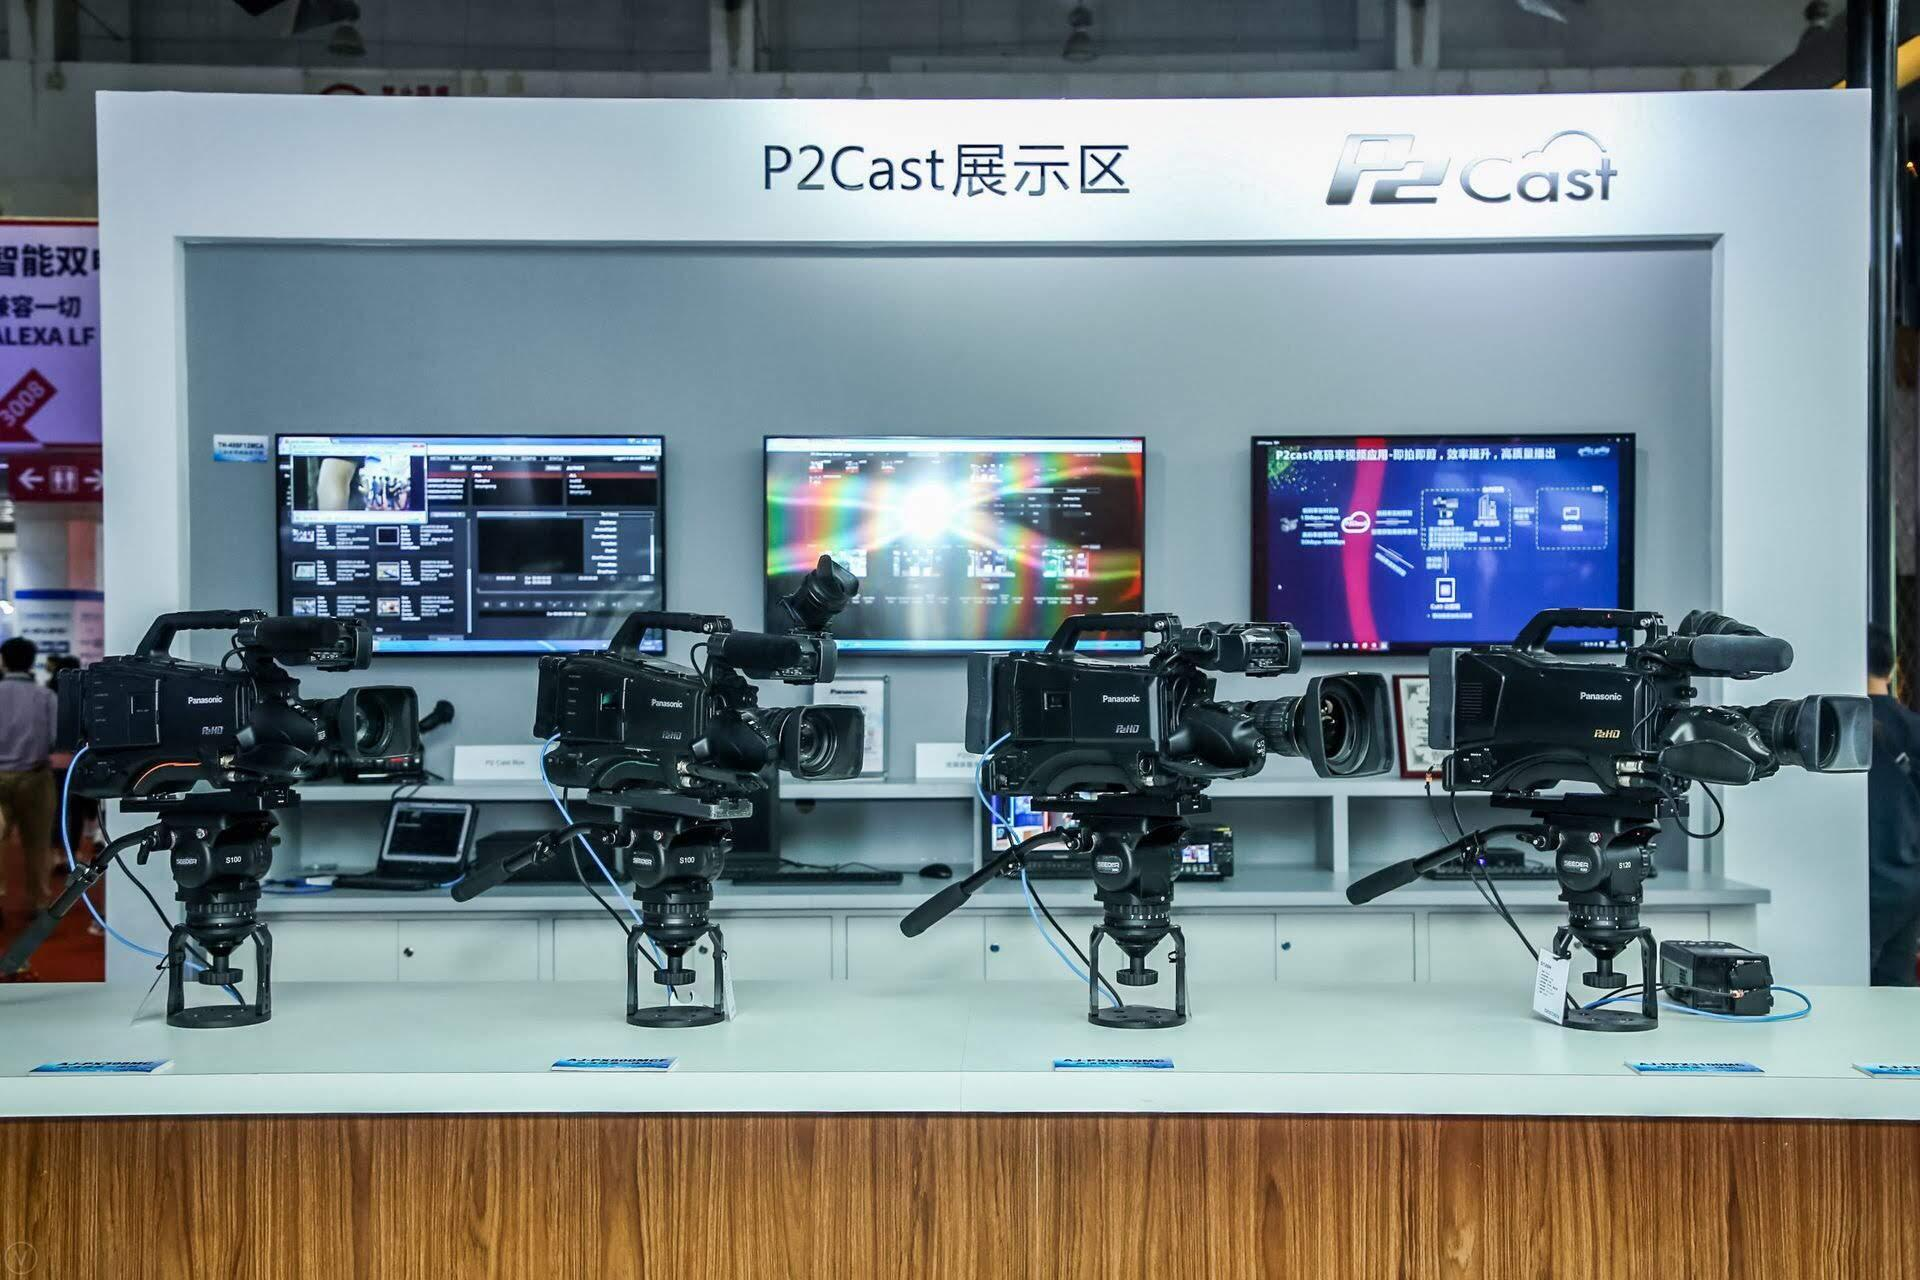 photo: Panasonic's P2 Cast exhibit at BIRTV 2018